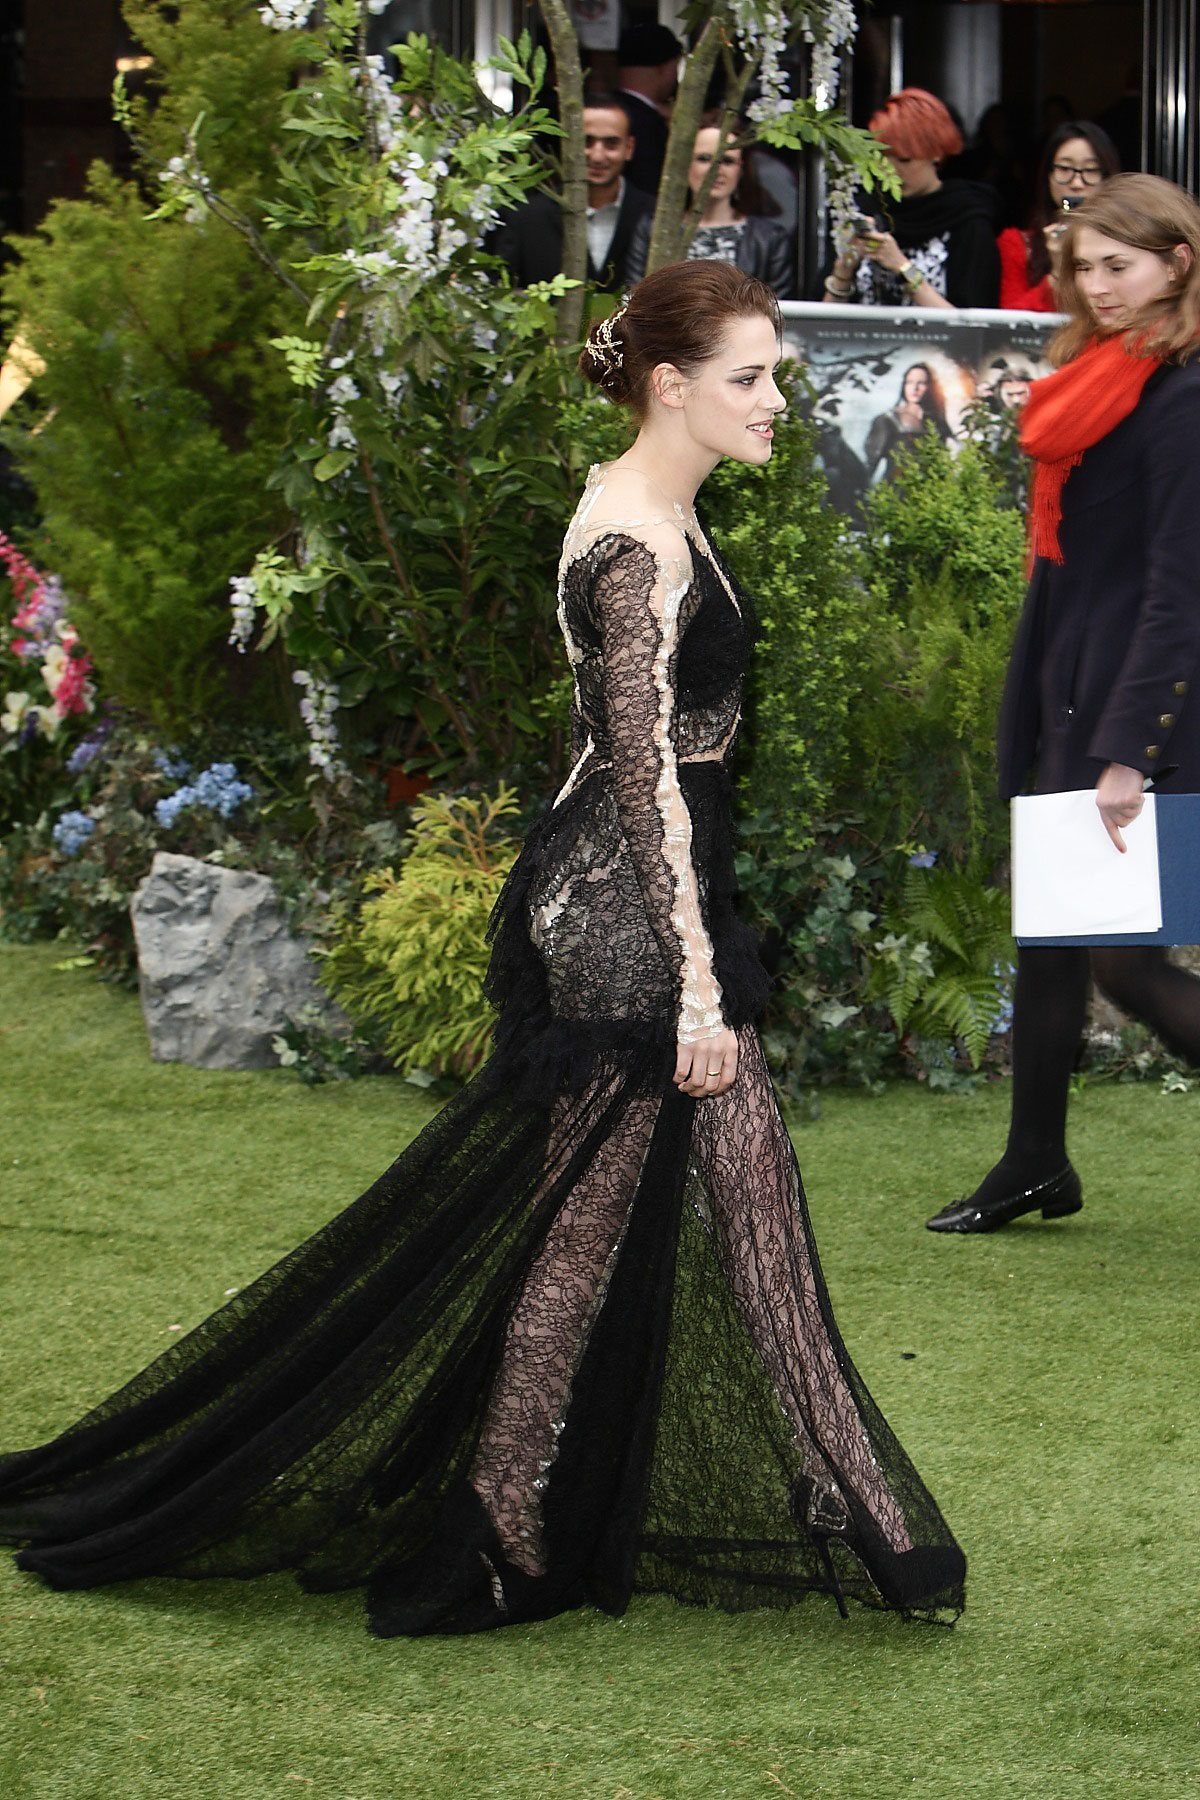 Kristen Stewart Premiere Of Snow White And The Huntsman